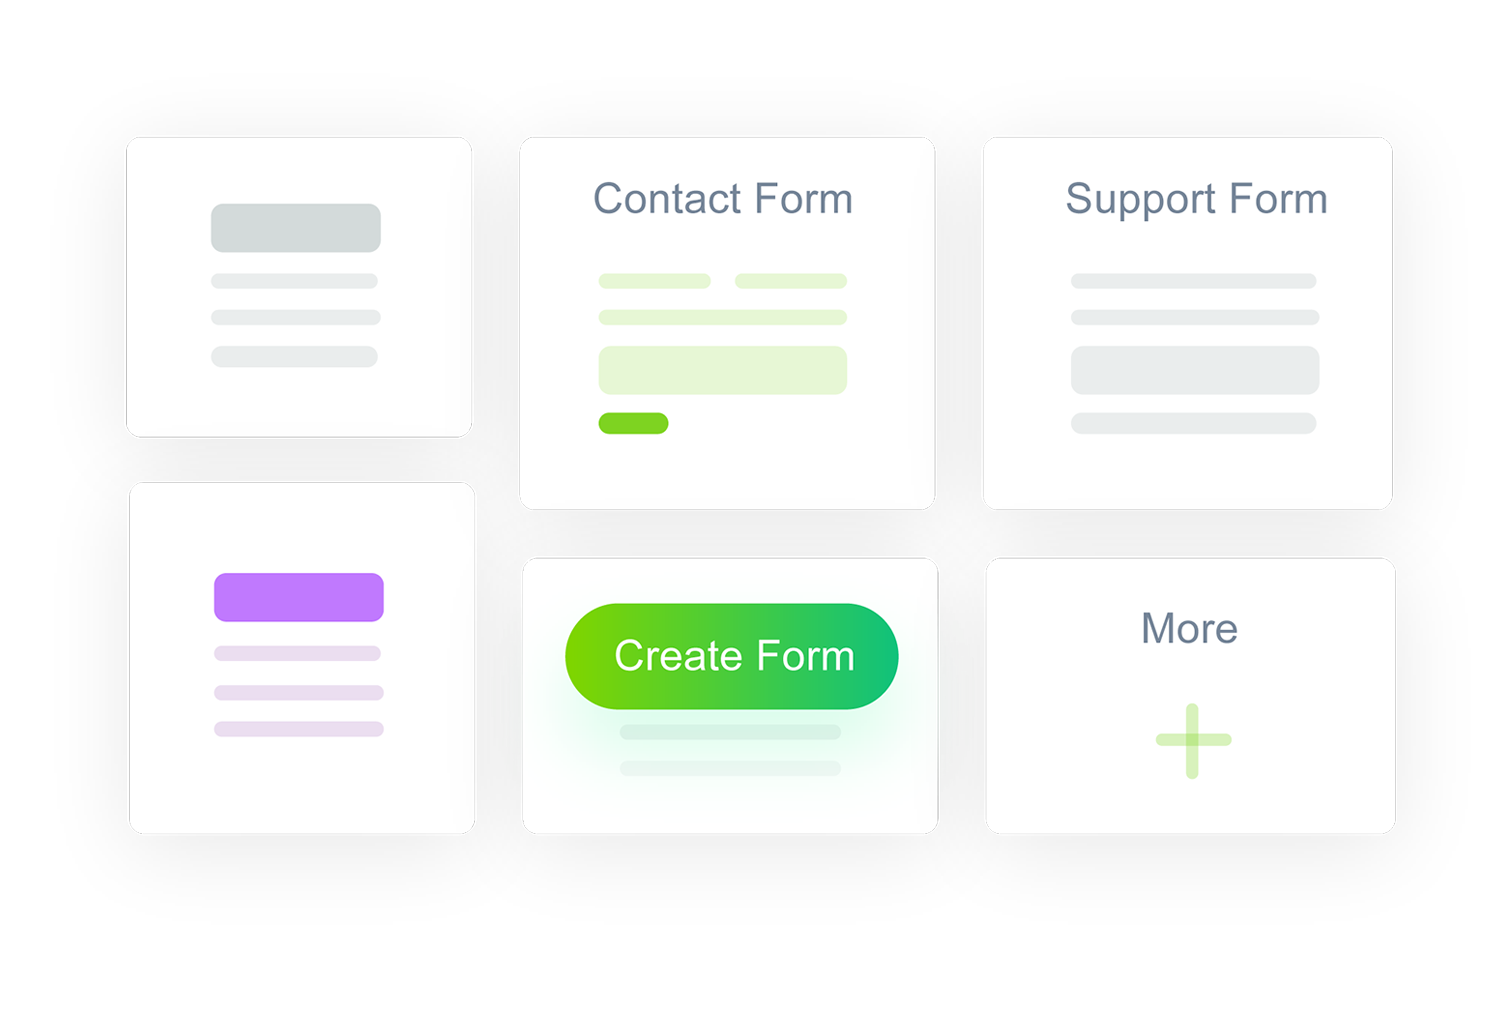 weForms offers over 25 WordPress contact form templates